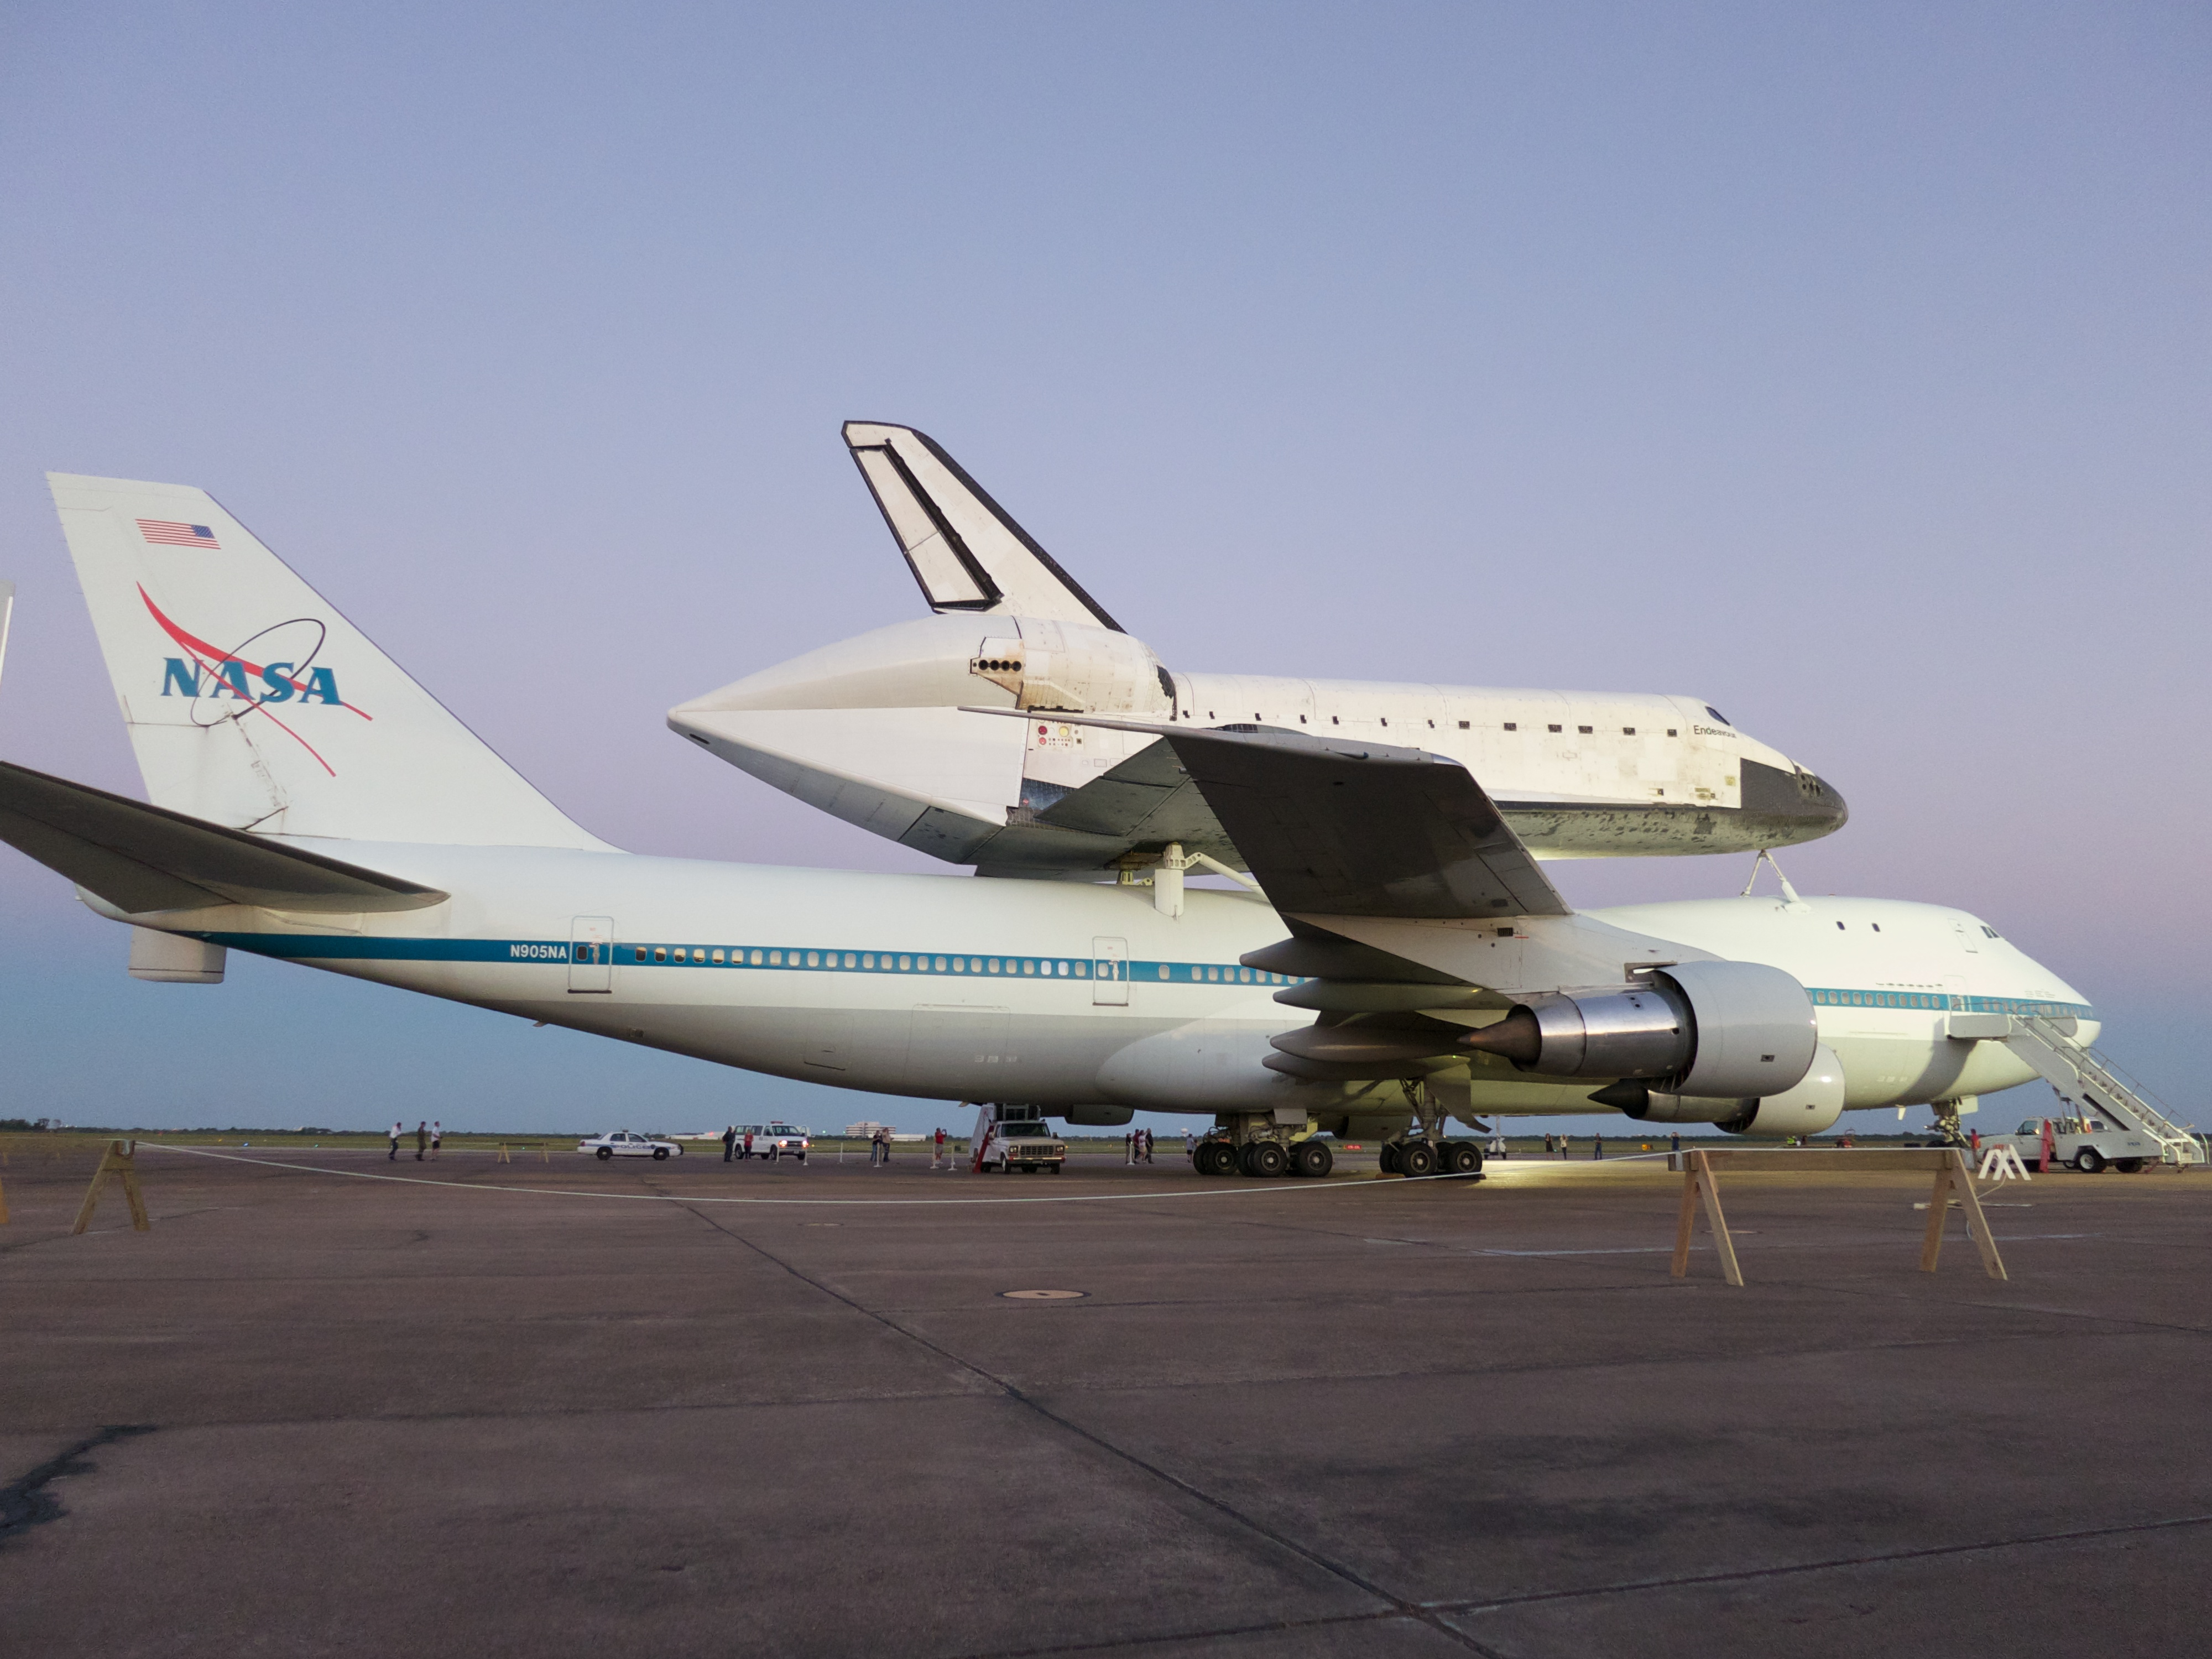 A fuller view of Endeavour and SCA #1. Partially obscured at left are the SCA's twin tails, necessary because of the turbulence created by the shuttle while airborne.